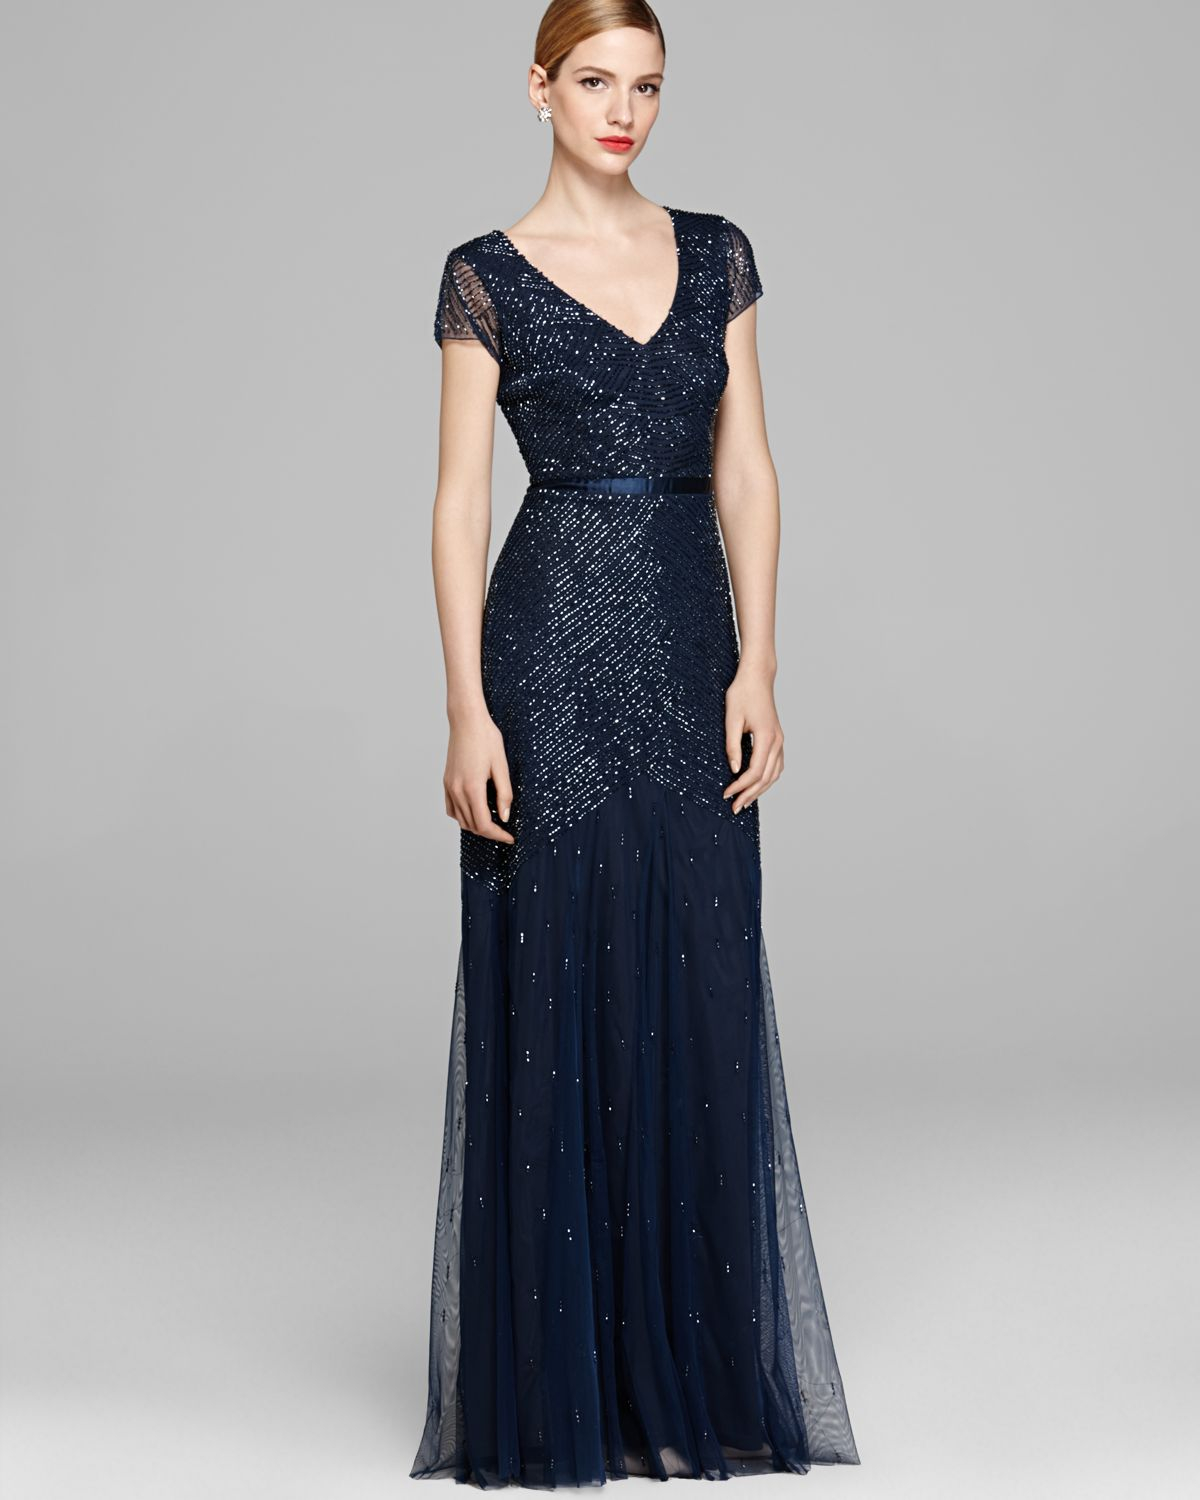 Adrianna Papell Gown Cap Sleeve Beaded in Blue - Lyst